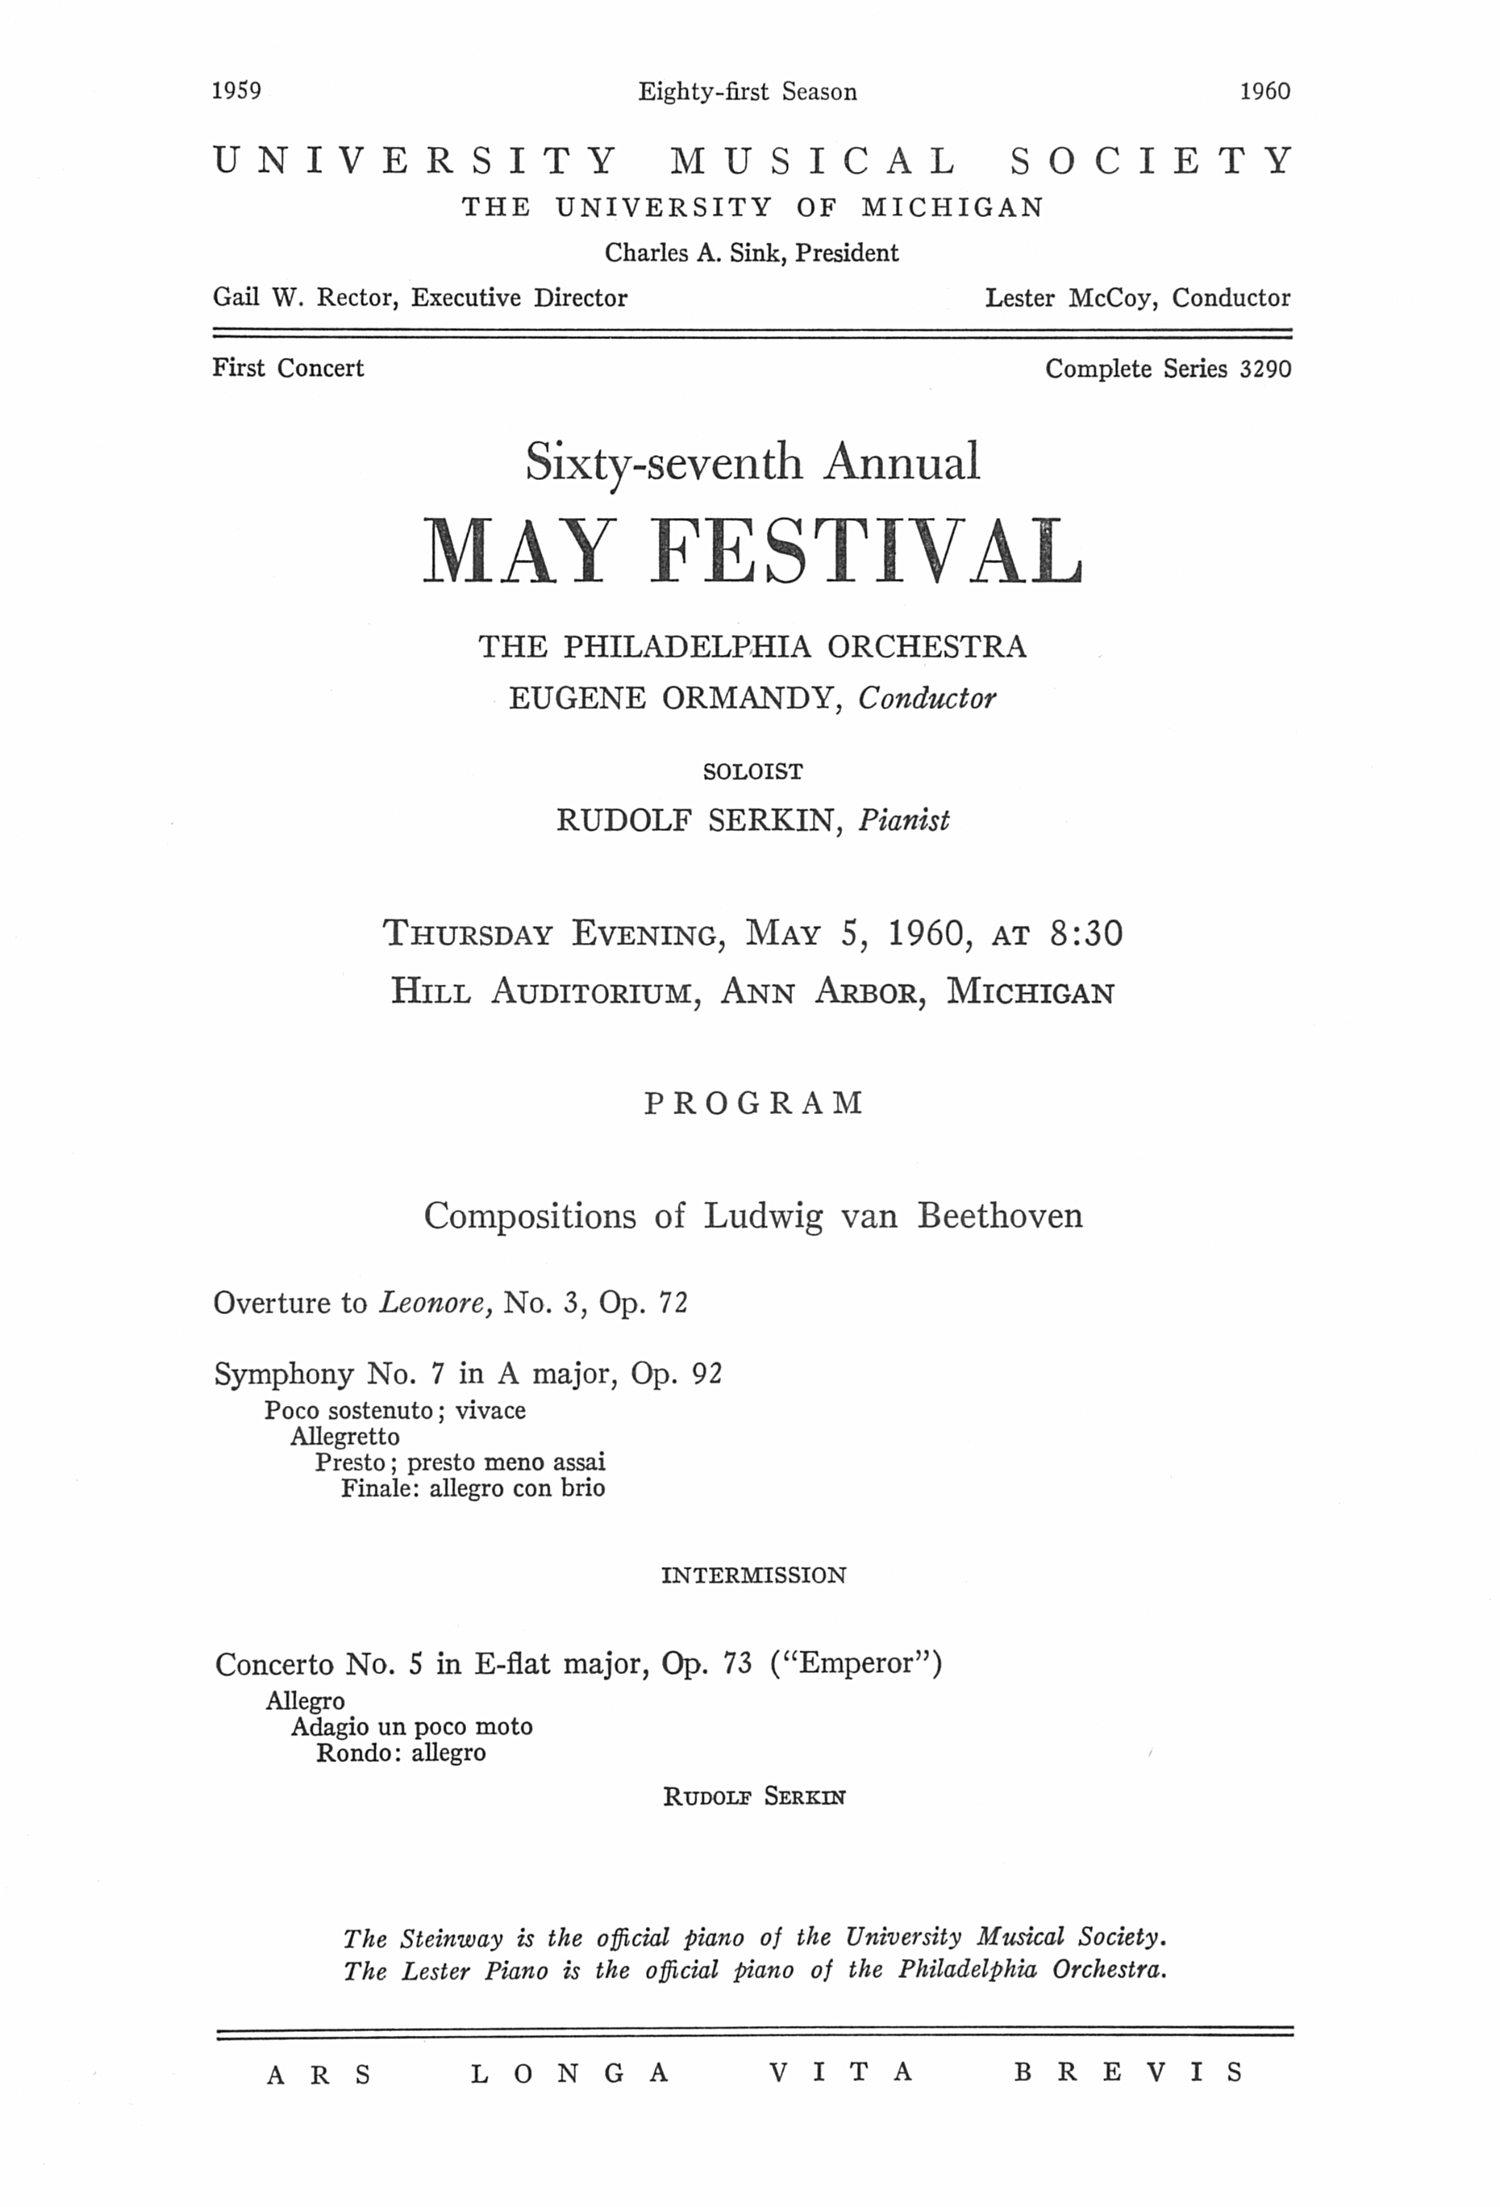 UMS Concert Program, May 5, 1960: Sixty-seventh Annual May Festival -- The Philadelphia Orchestra image